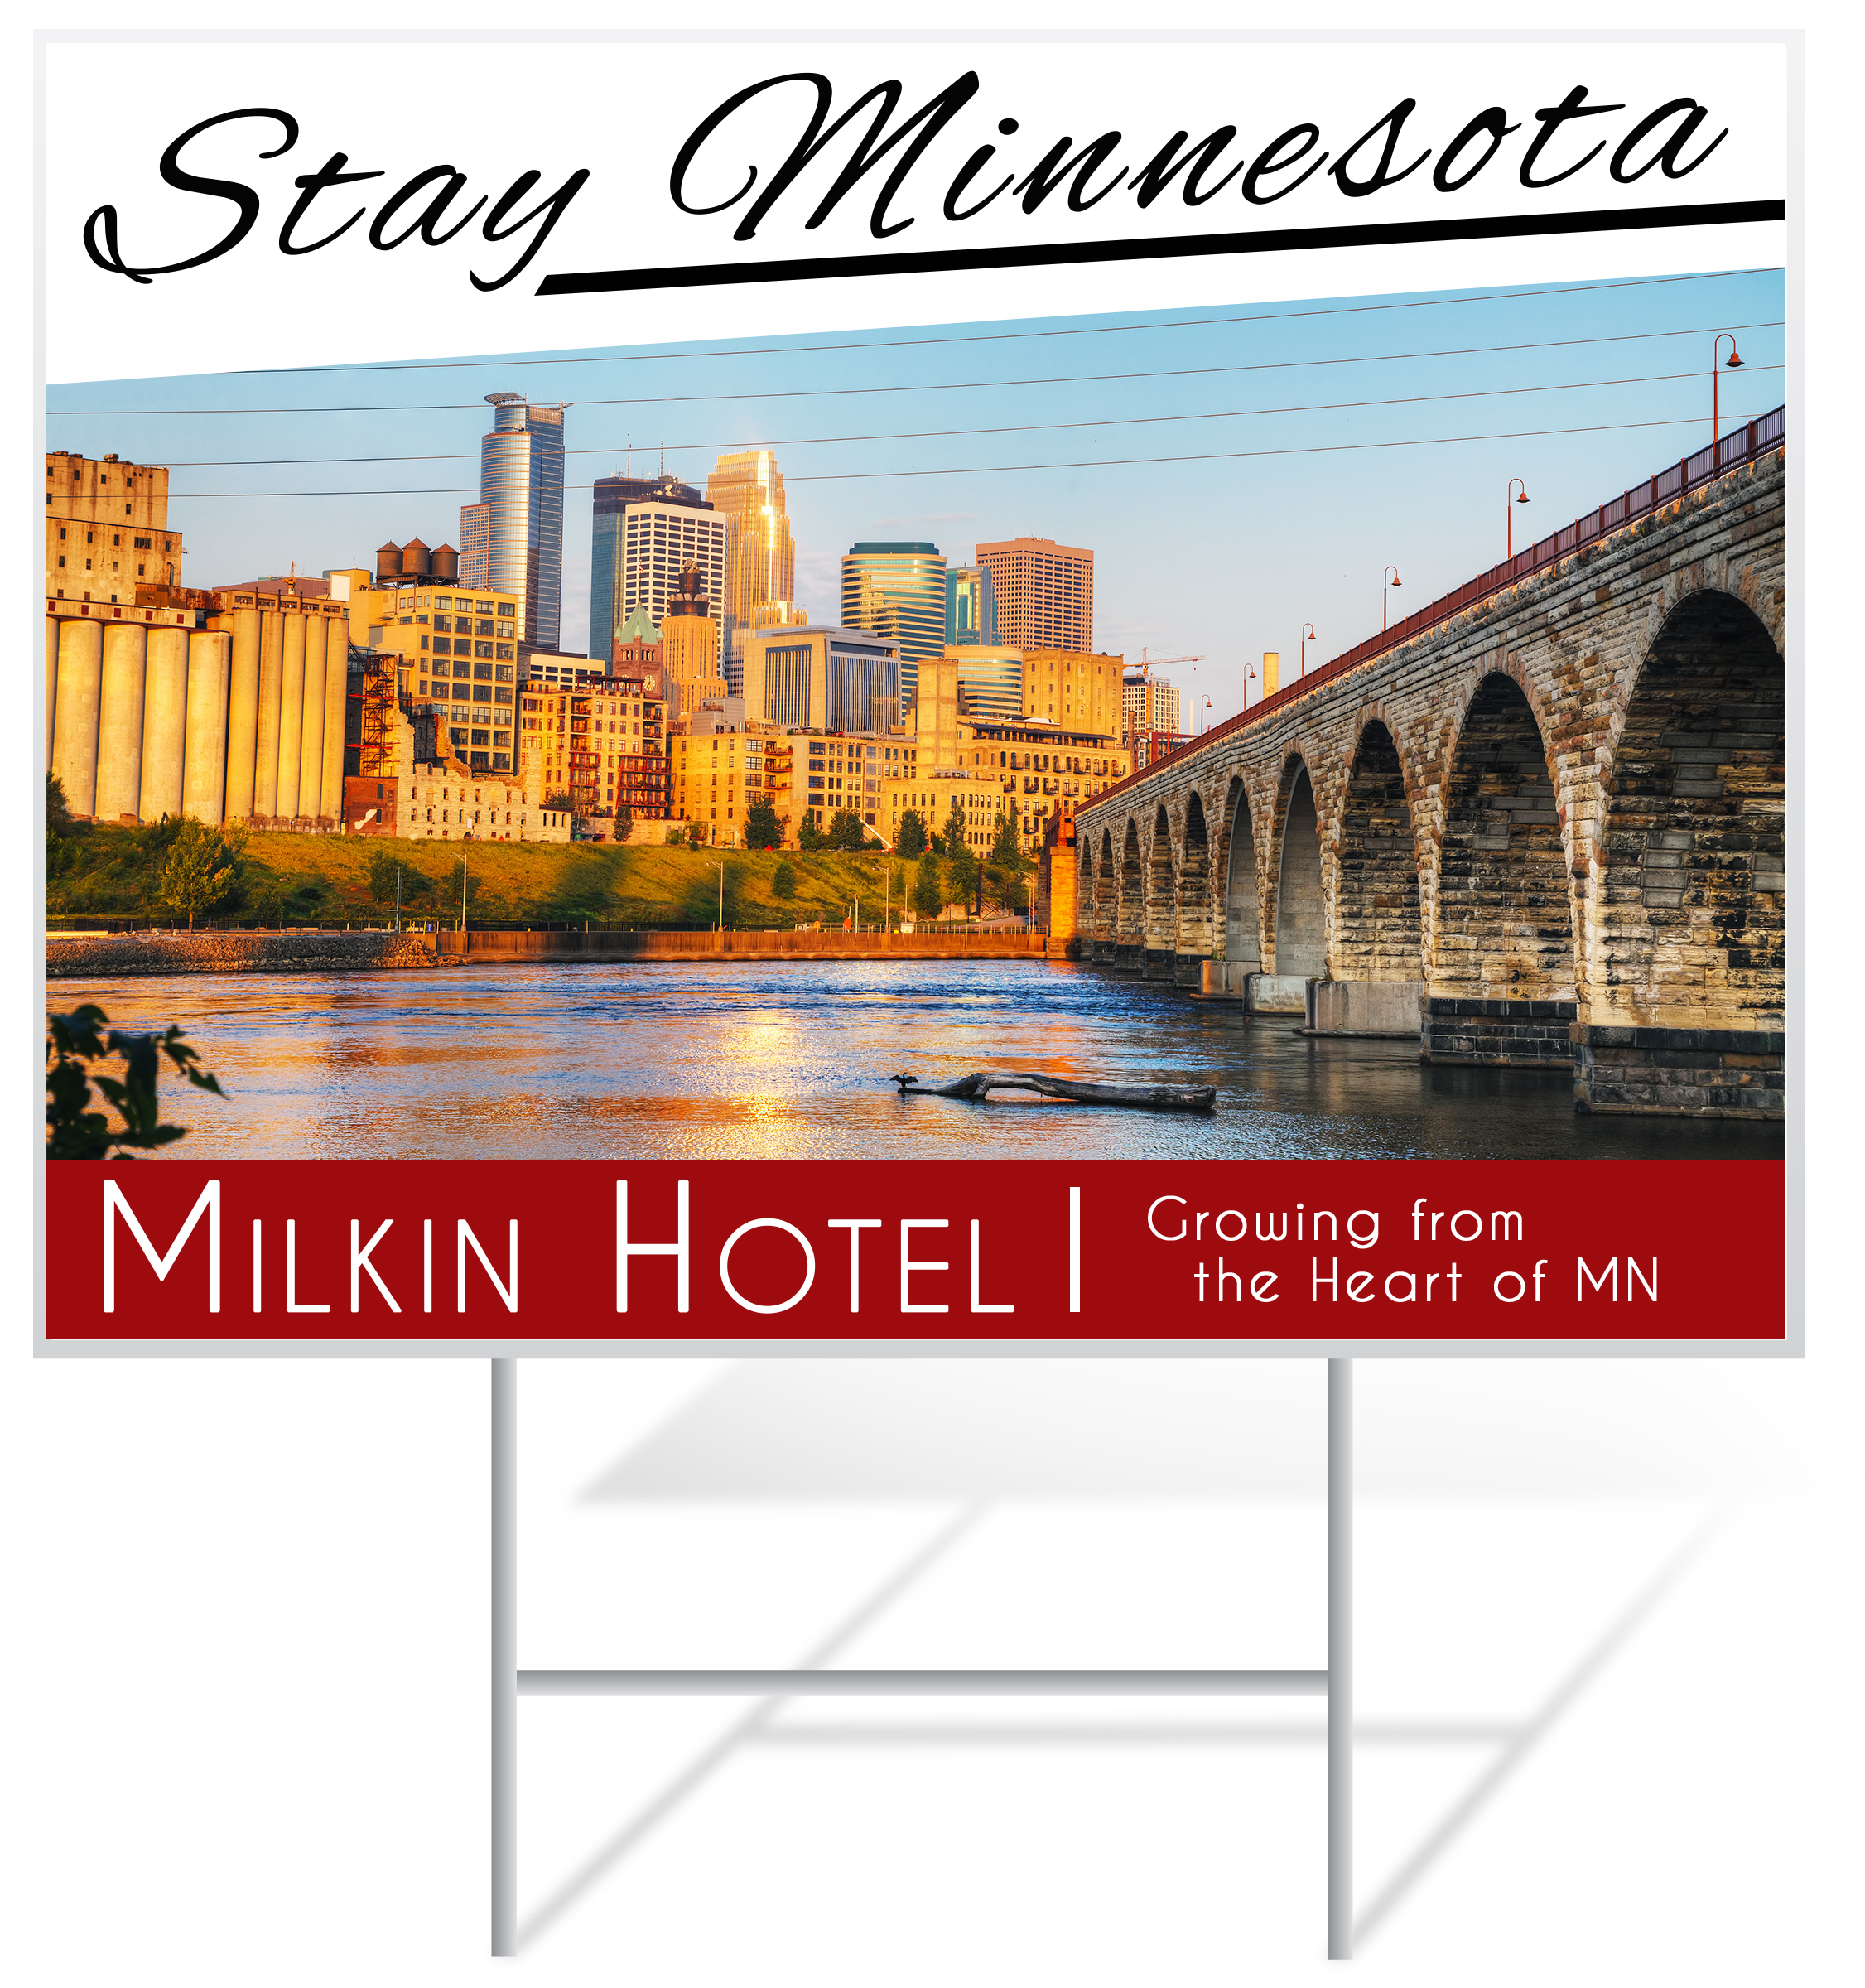 Hotel Lawn Sign Example | LawnSigns.com